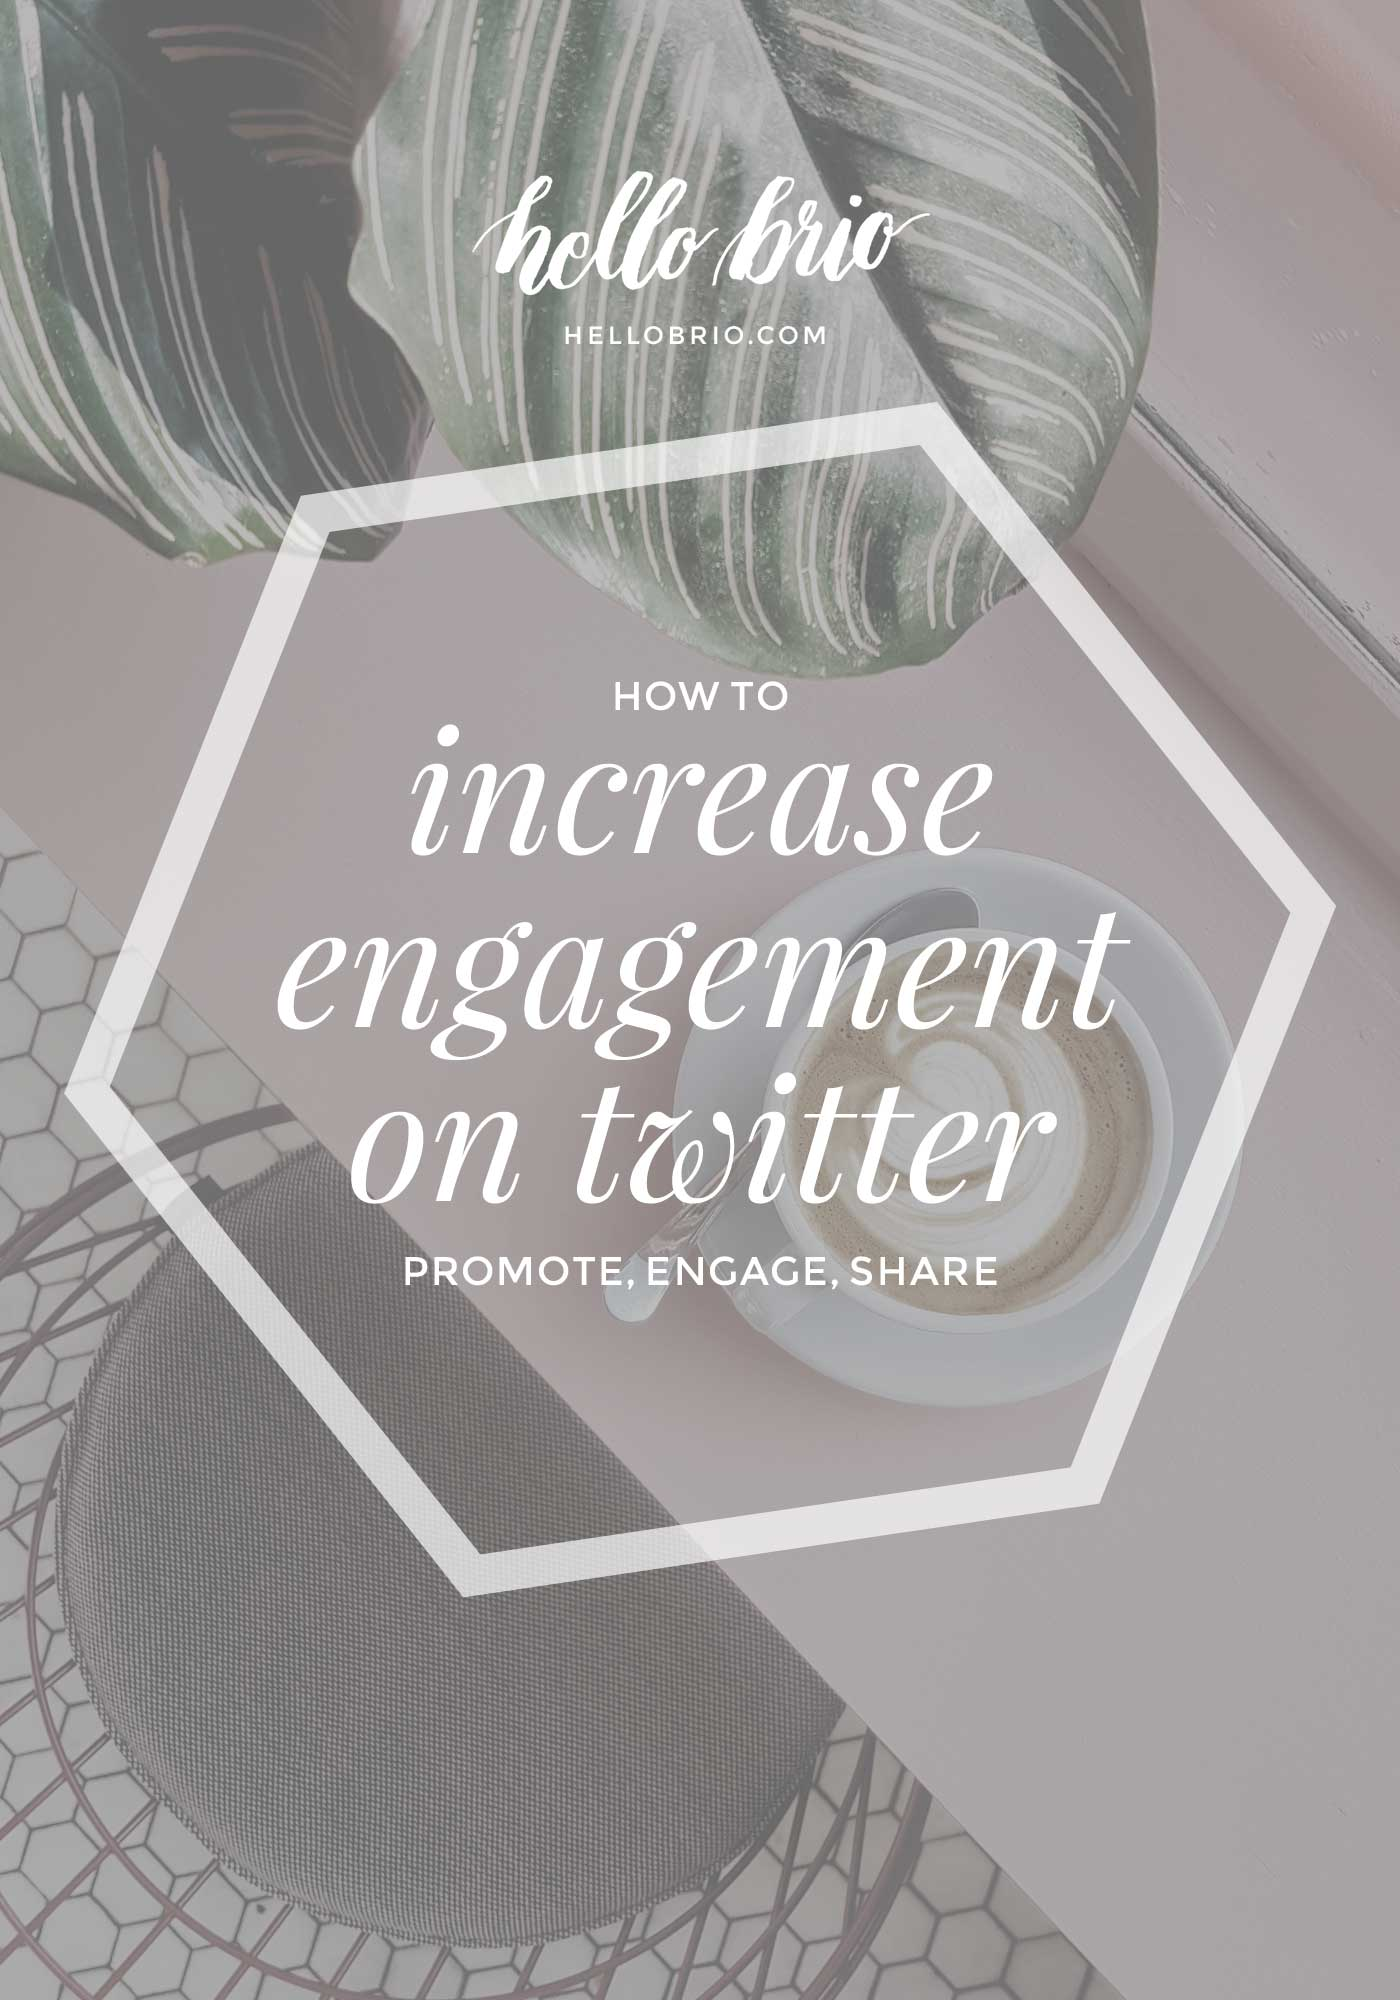 """""""How to promote your posts on twitter the right way - Social Media and Content Marketing tips on HelloBrio.com"""